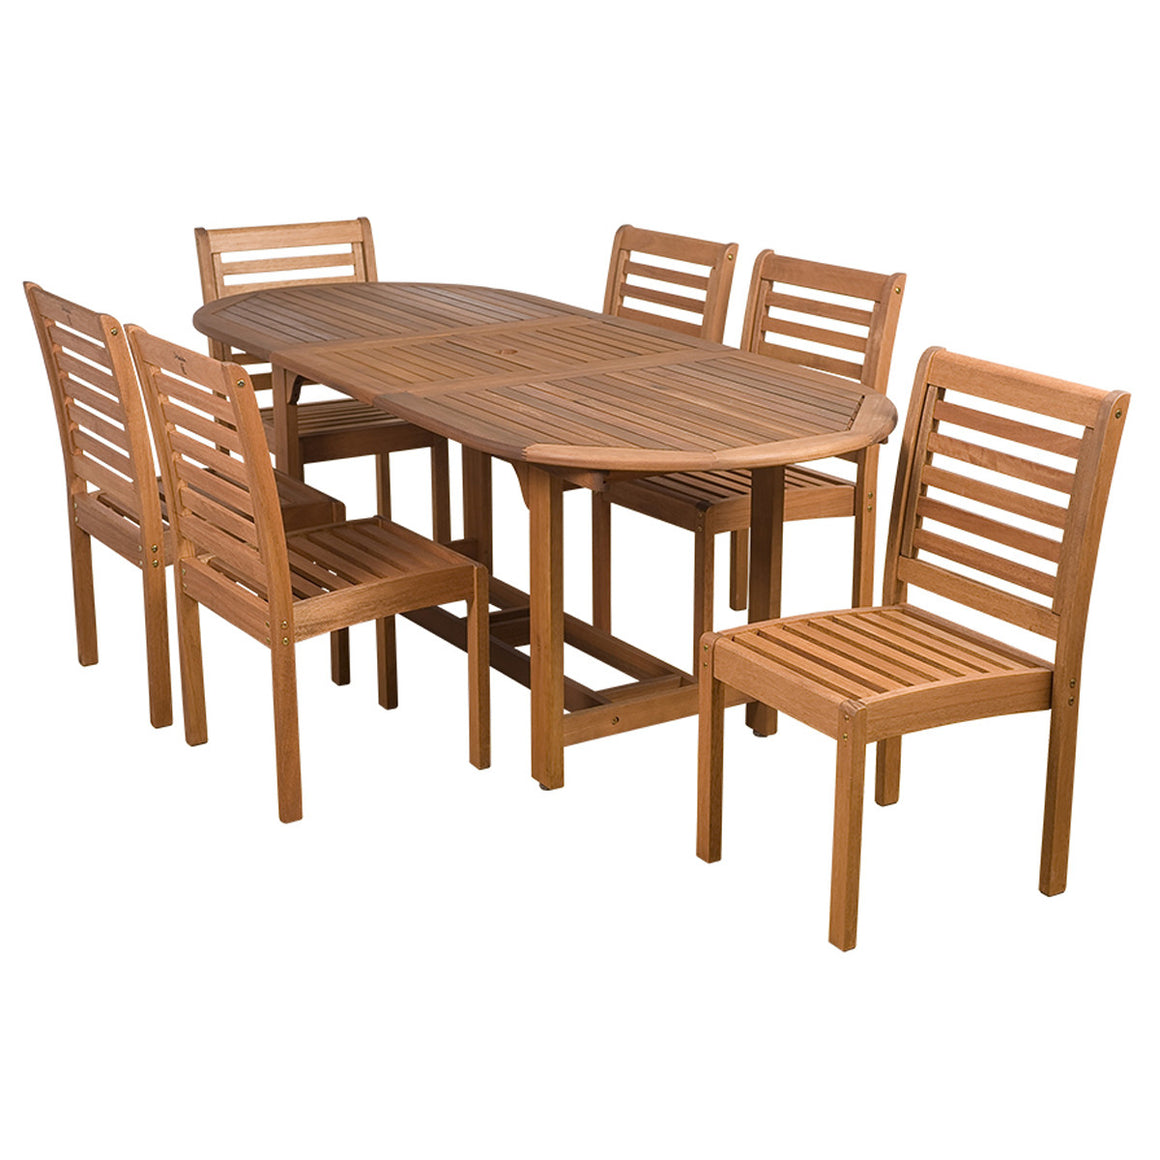 Eucalyptus 7 piece Armless Oval Extendable Patio Dining Set , International Home Miami- grayburd